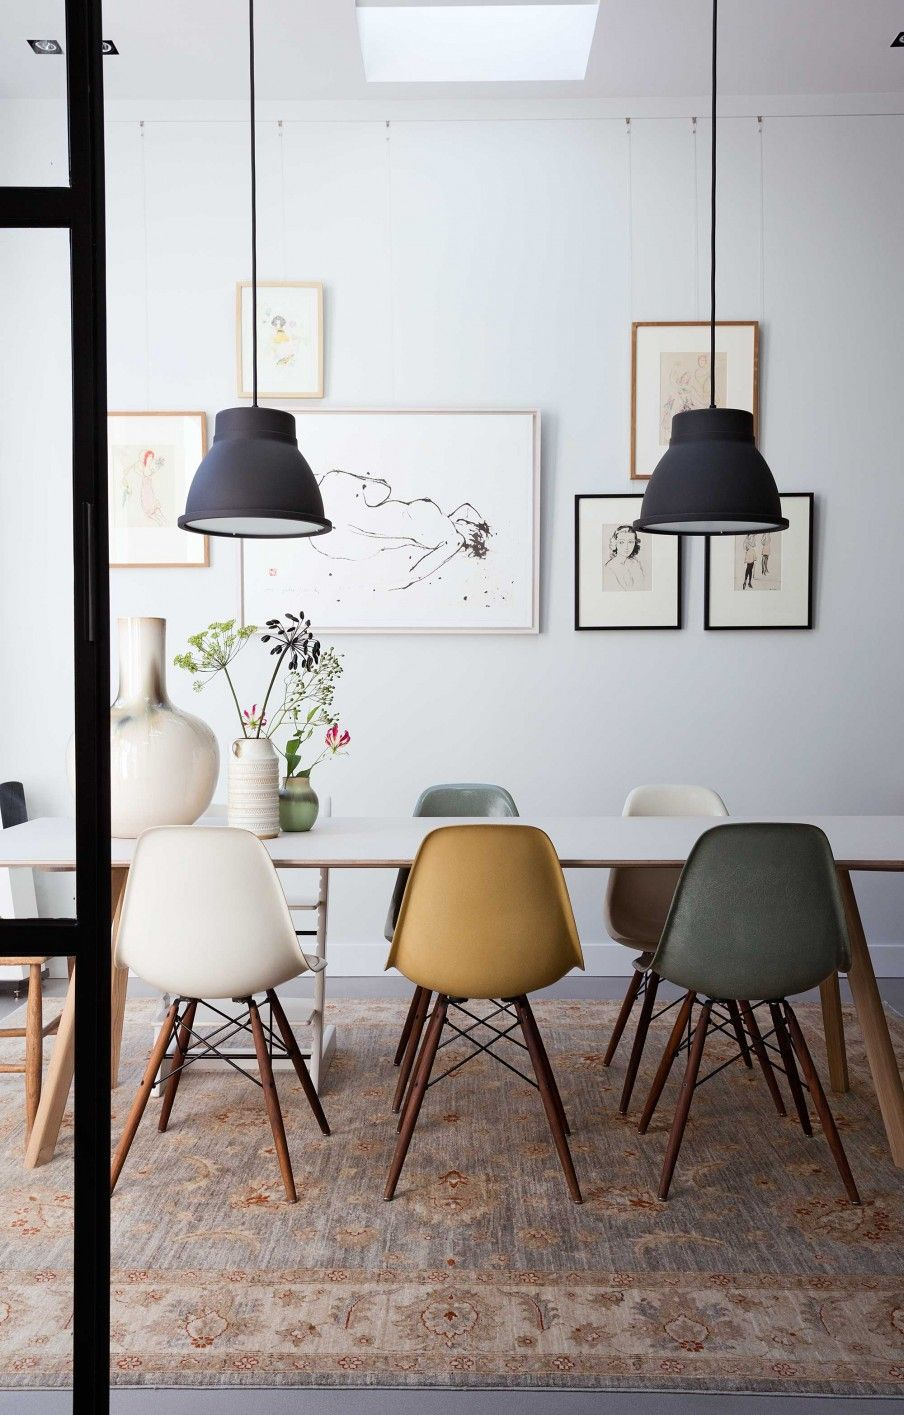 Dining space with colorful Eames chairs